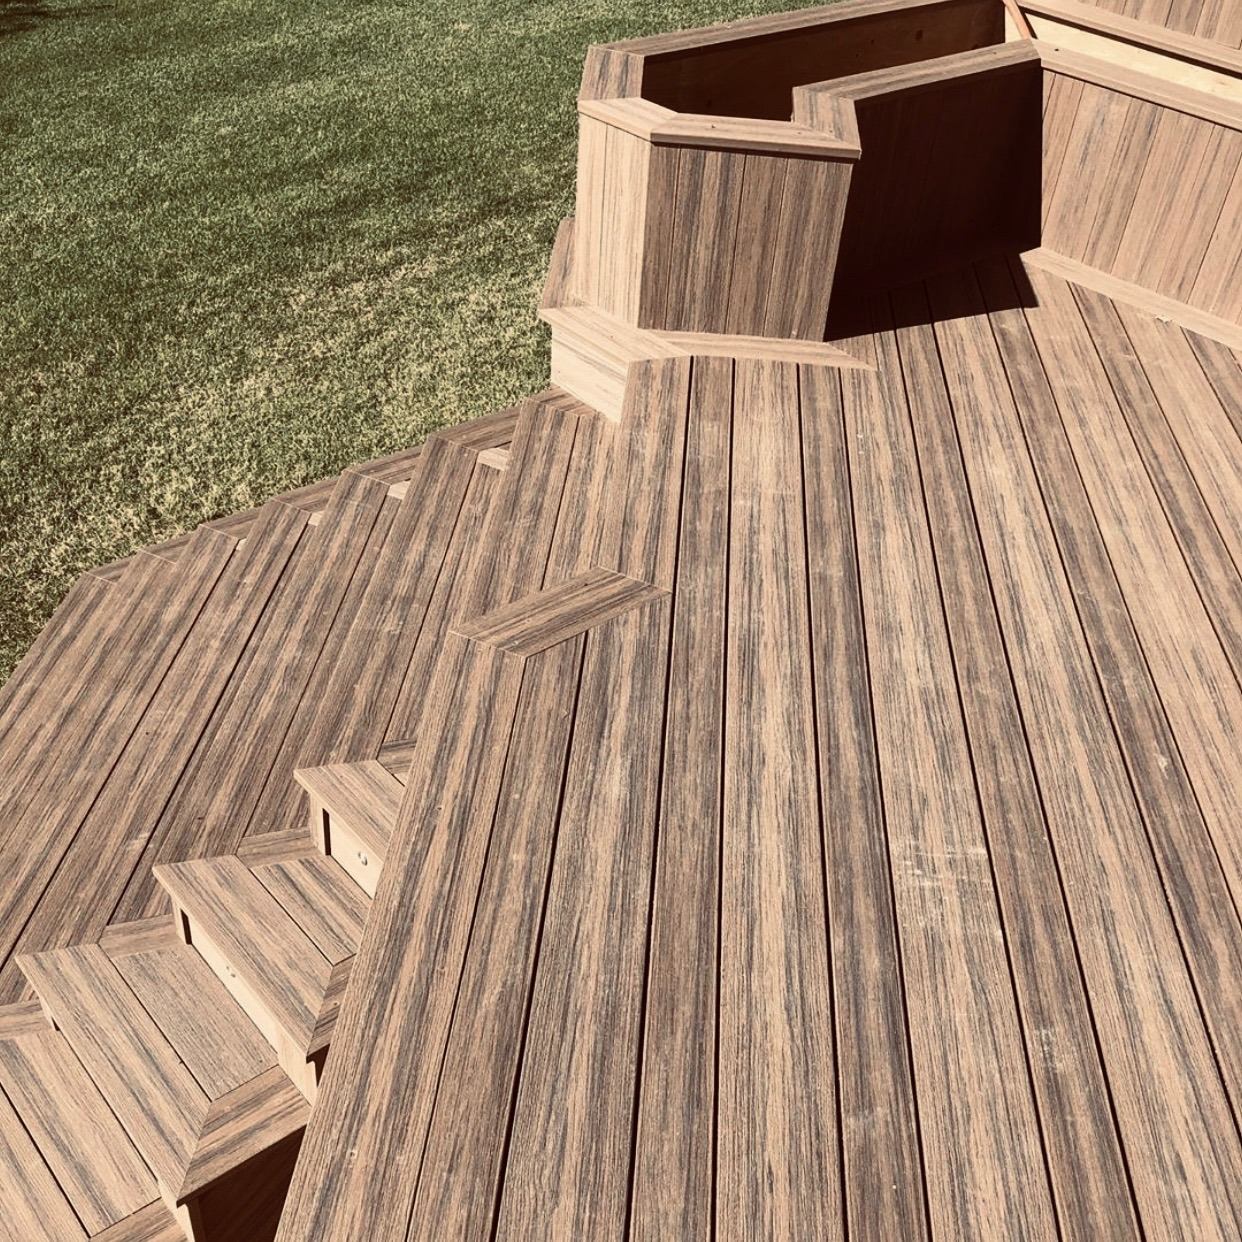 Deck design ideas incorporating planters and stairs using composite decking materials